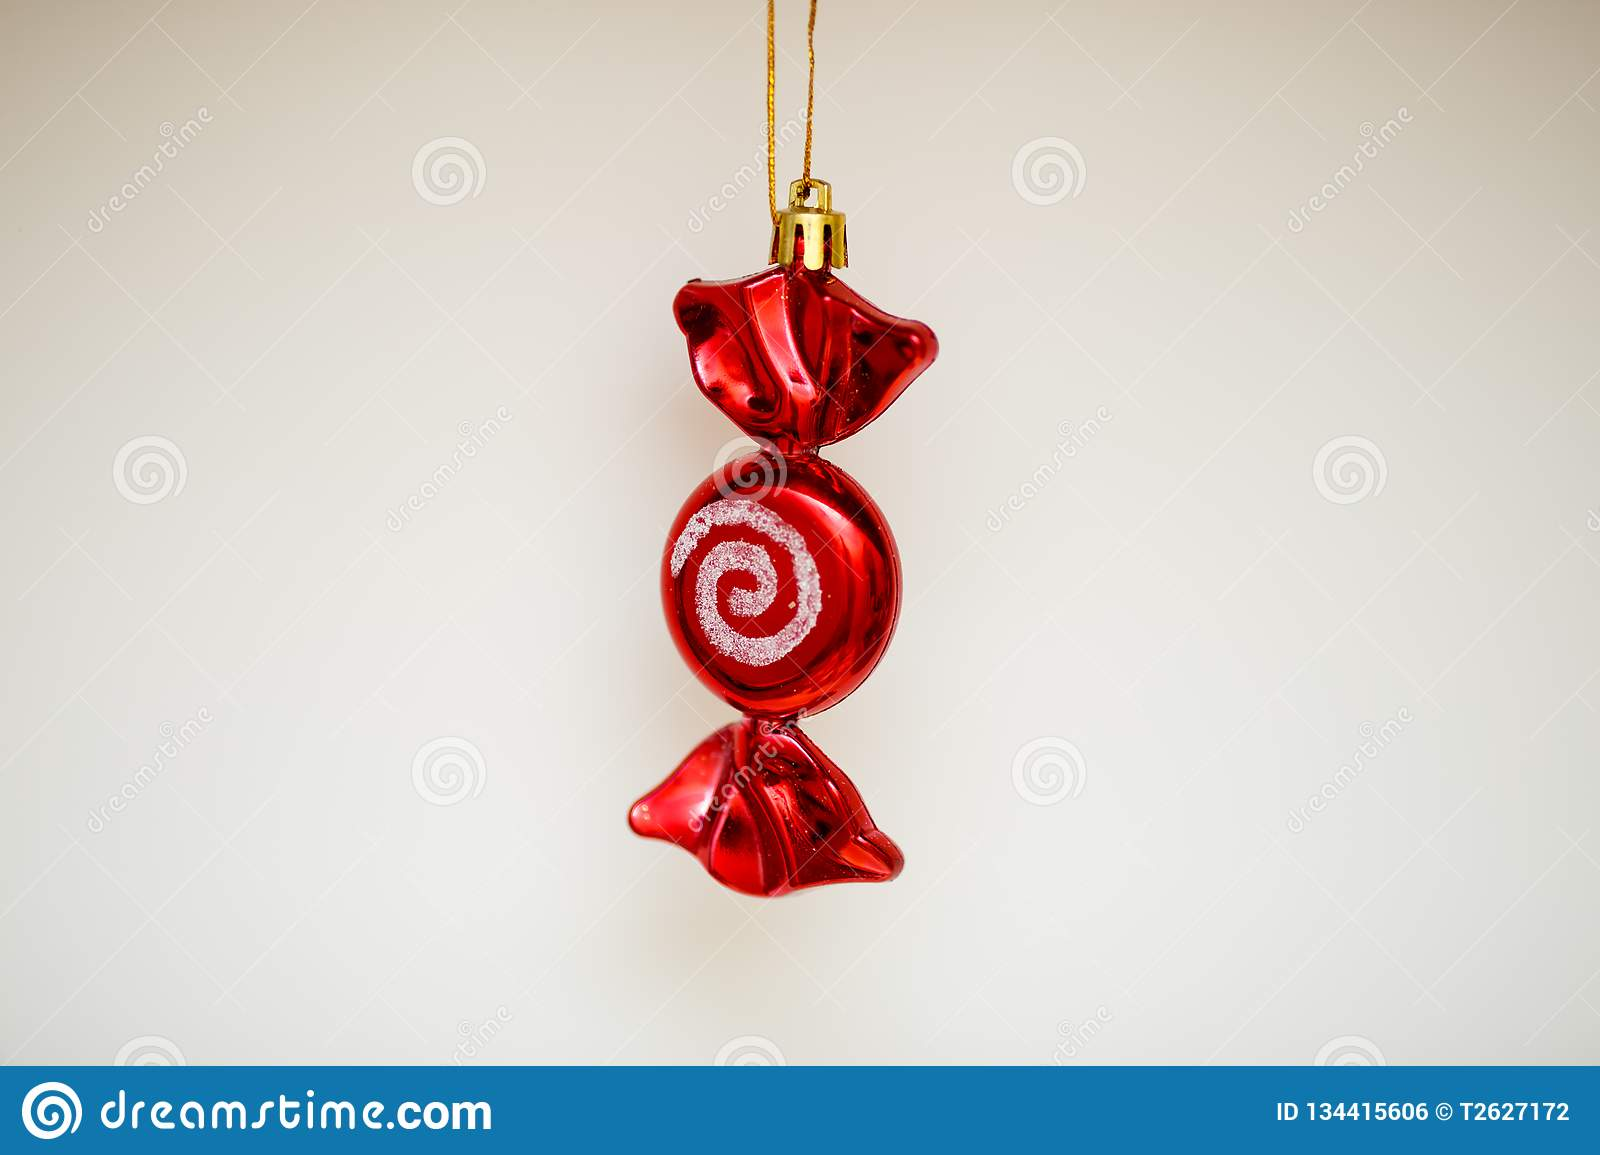 Christmas tree toy as a festive decoration